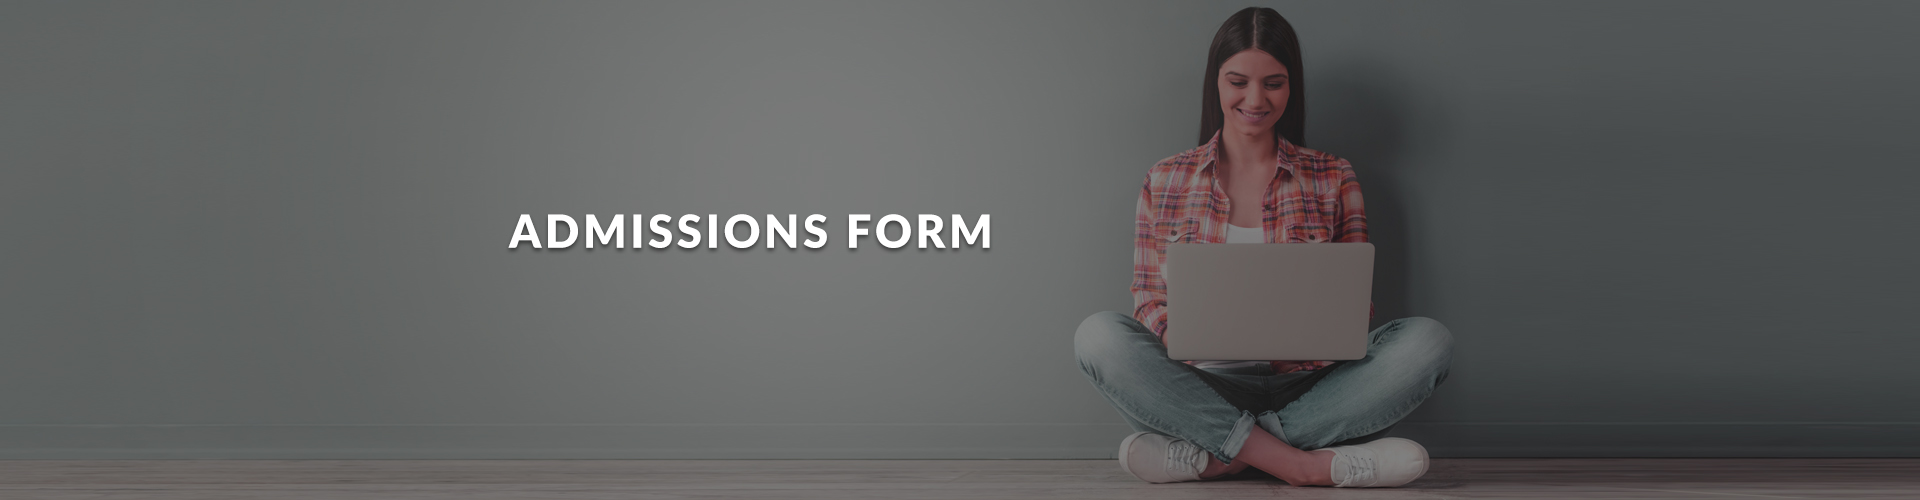 admissions-form